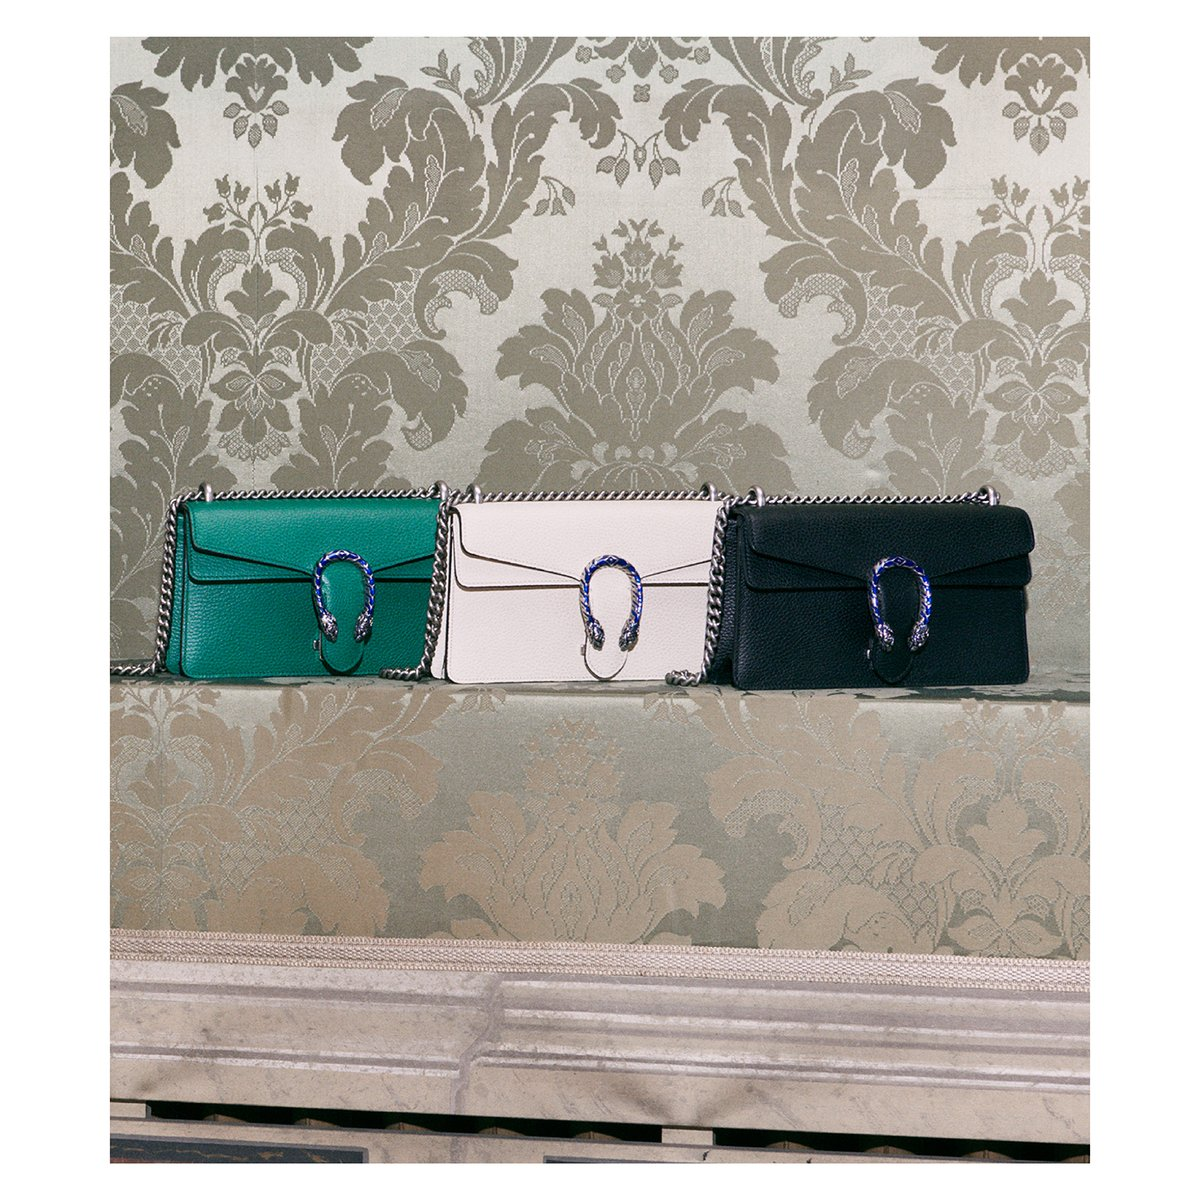 Defined by its tiger head closure, the #GucciDionysus shoulder bags take on a new vibrancy in white and black leather as well as a vivid shade of green with electric blue enamel on the closure. Discover more . #GucciEpilogue #AlessandroMichele